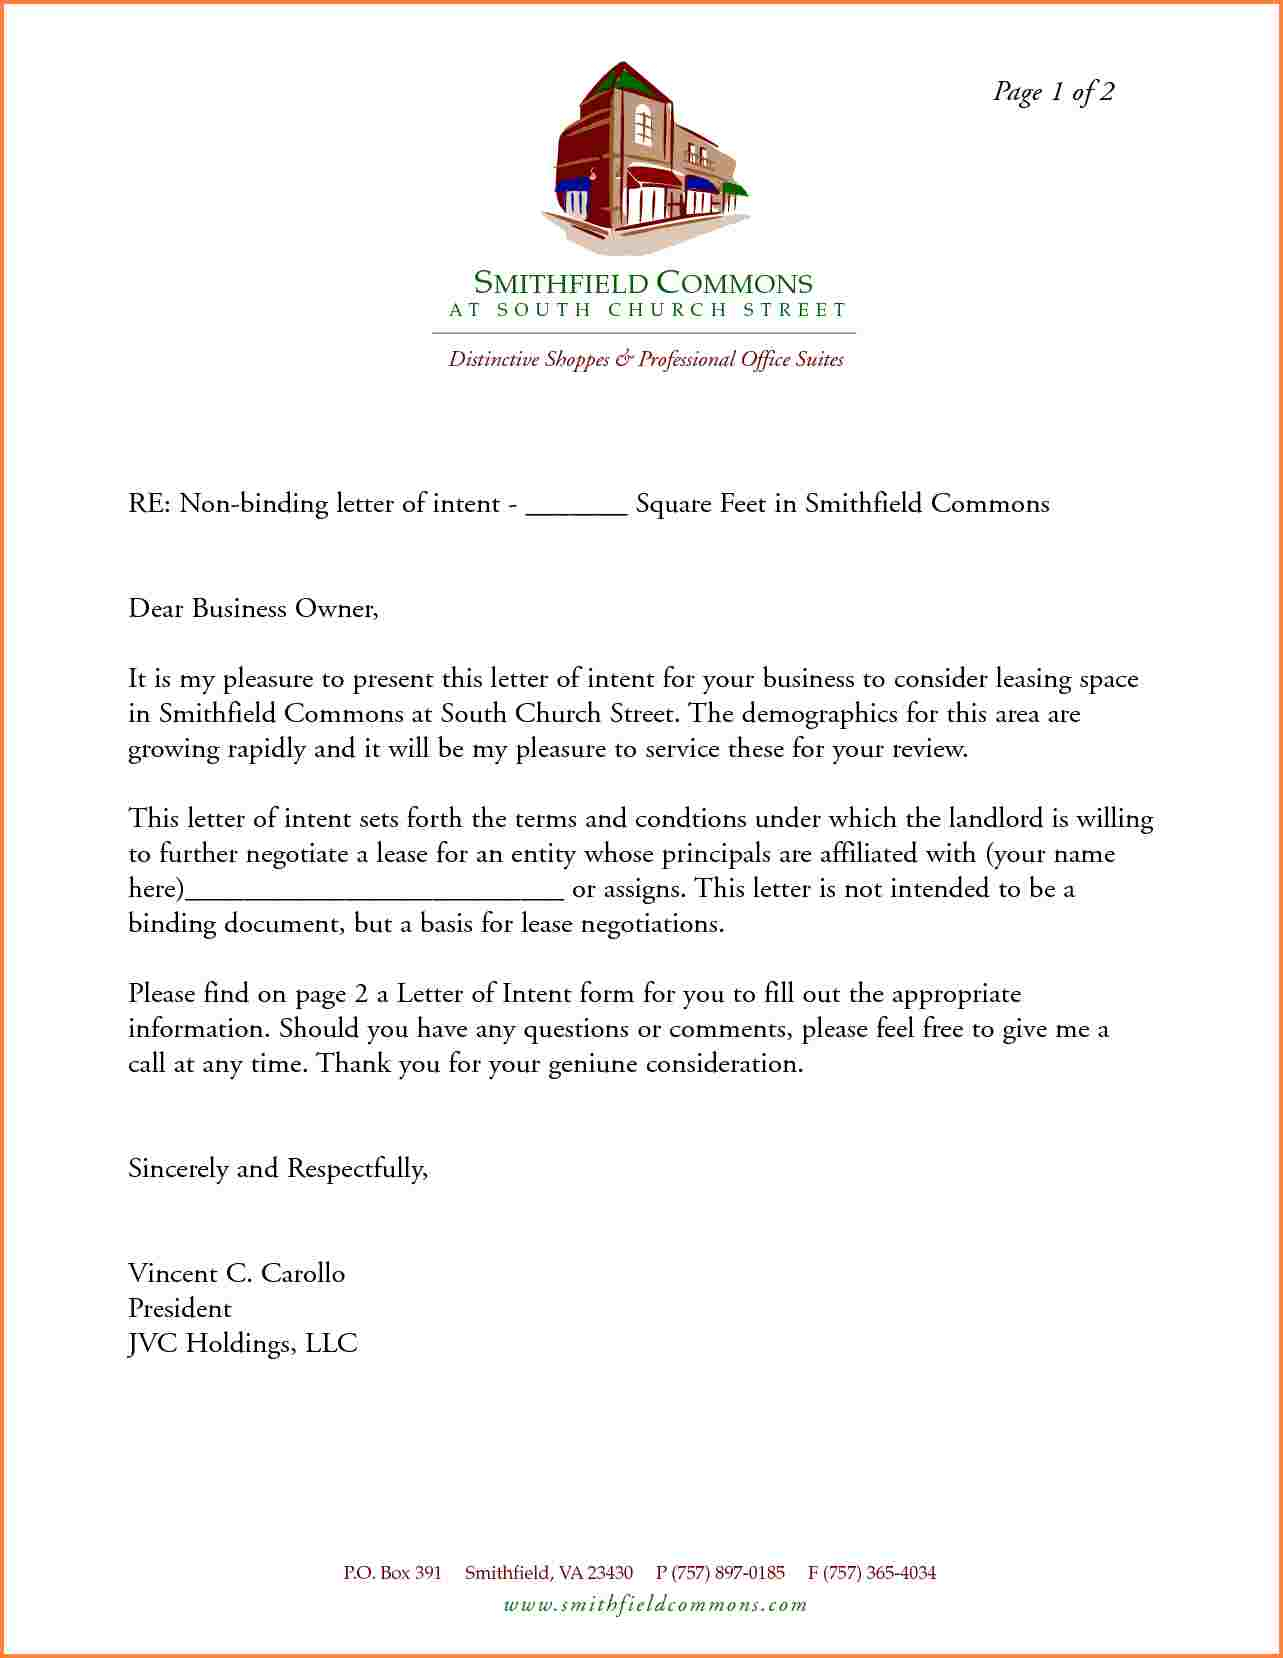 Letter Of Intent Template Commercial Lease - Mercial Lease Letter Intent Example Sample to Restaurant Space